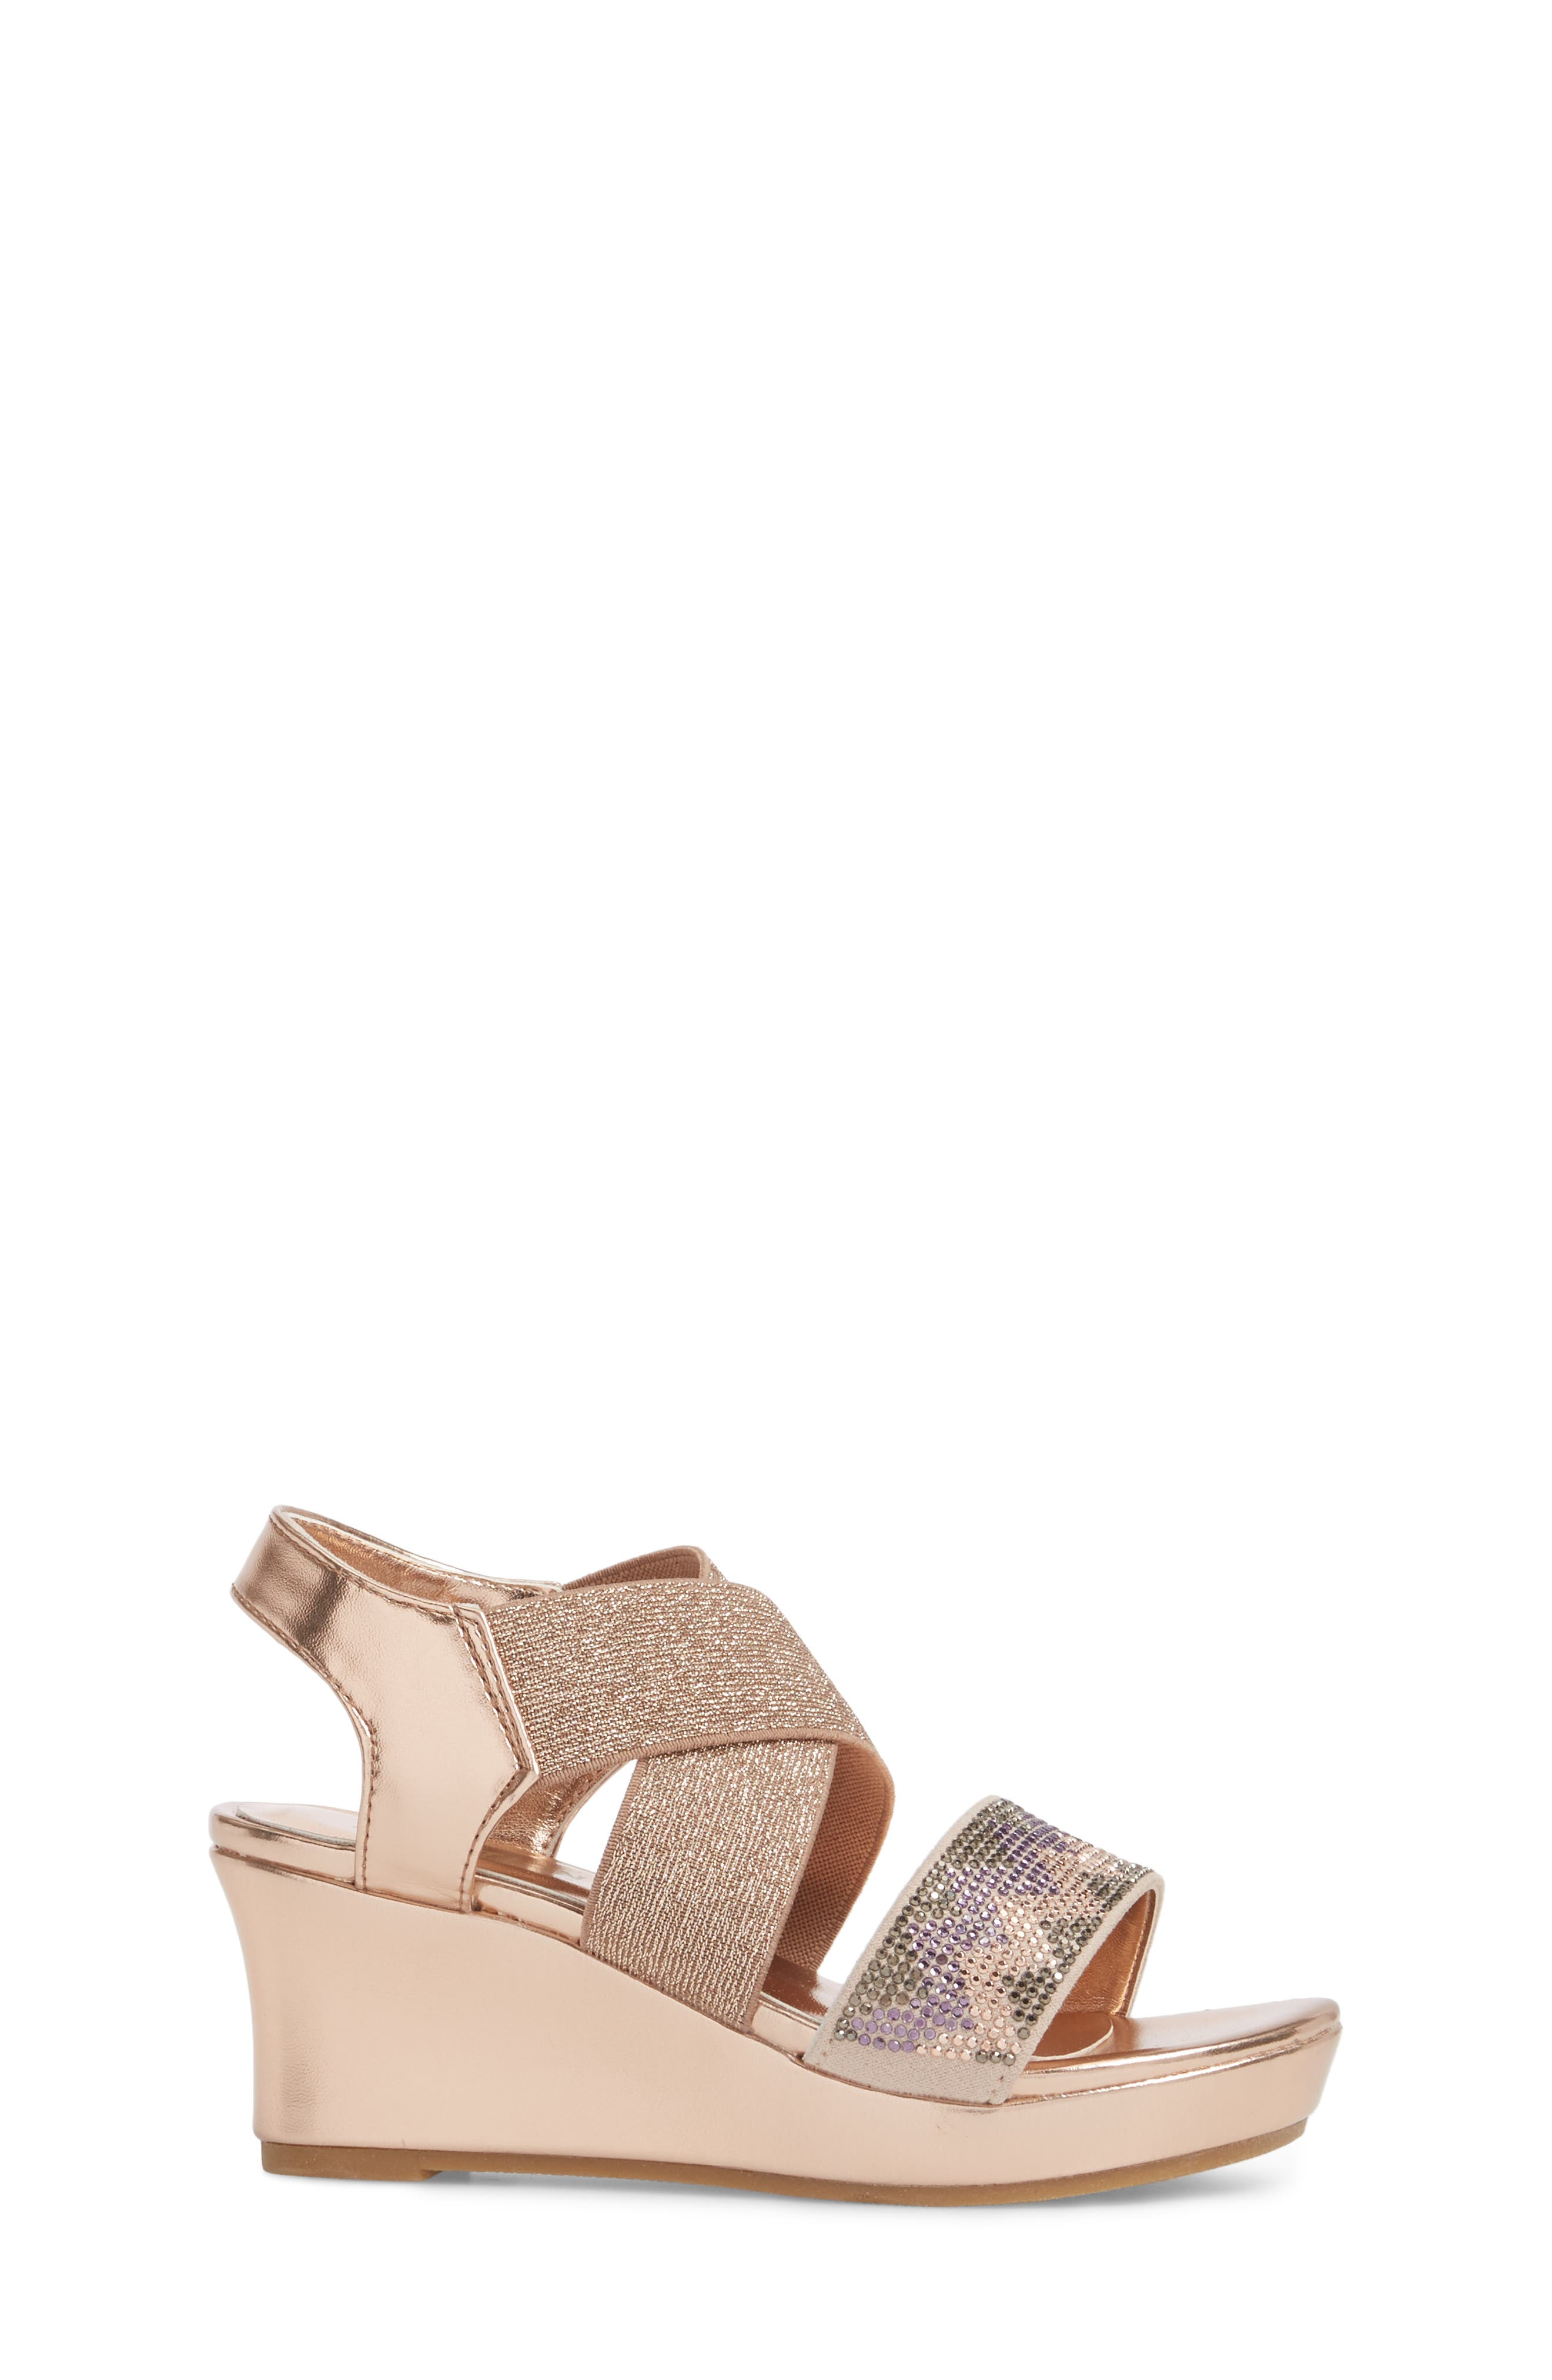 Reaction Kenneth Cole Reed Mamba Embellished Wedge Sandal,                             Alternate thumbnail 3, color,                             220